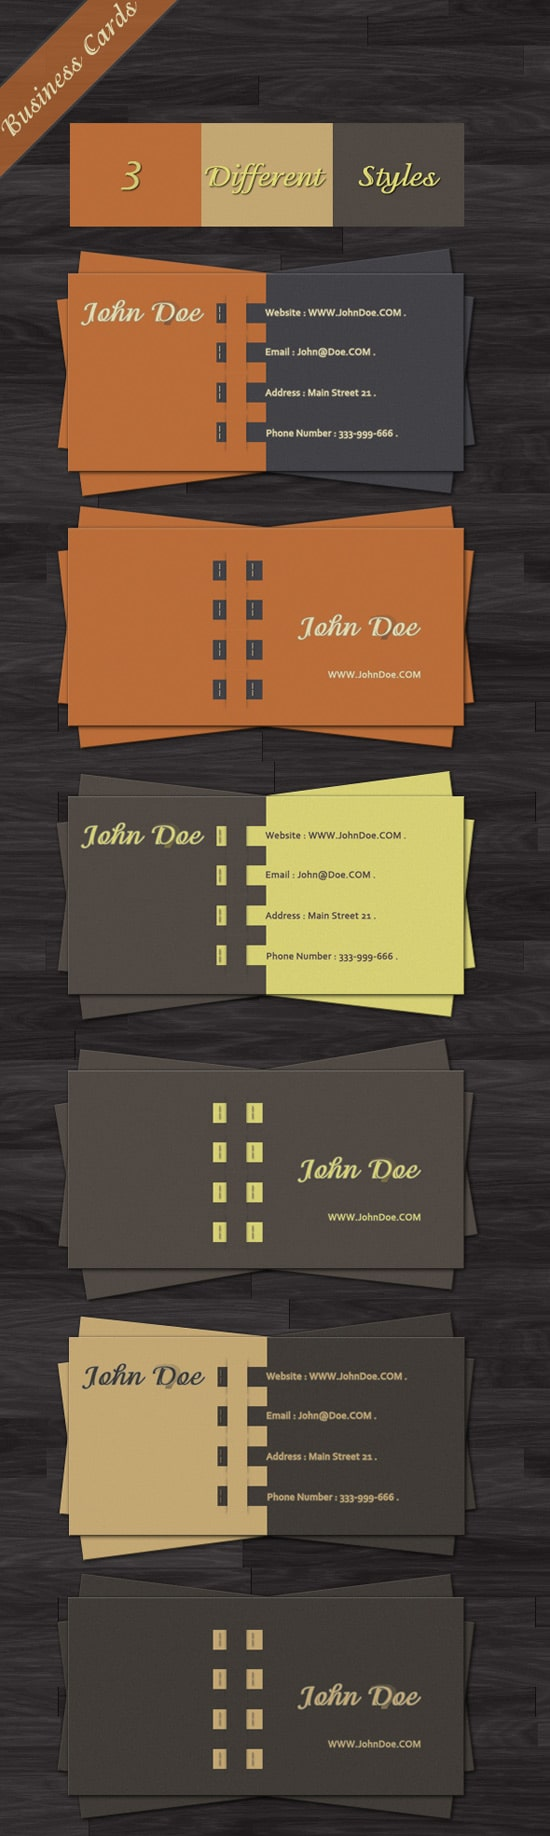 100 free business card templates designrfix business is business free psd vector business card flashek Gallery